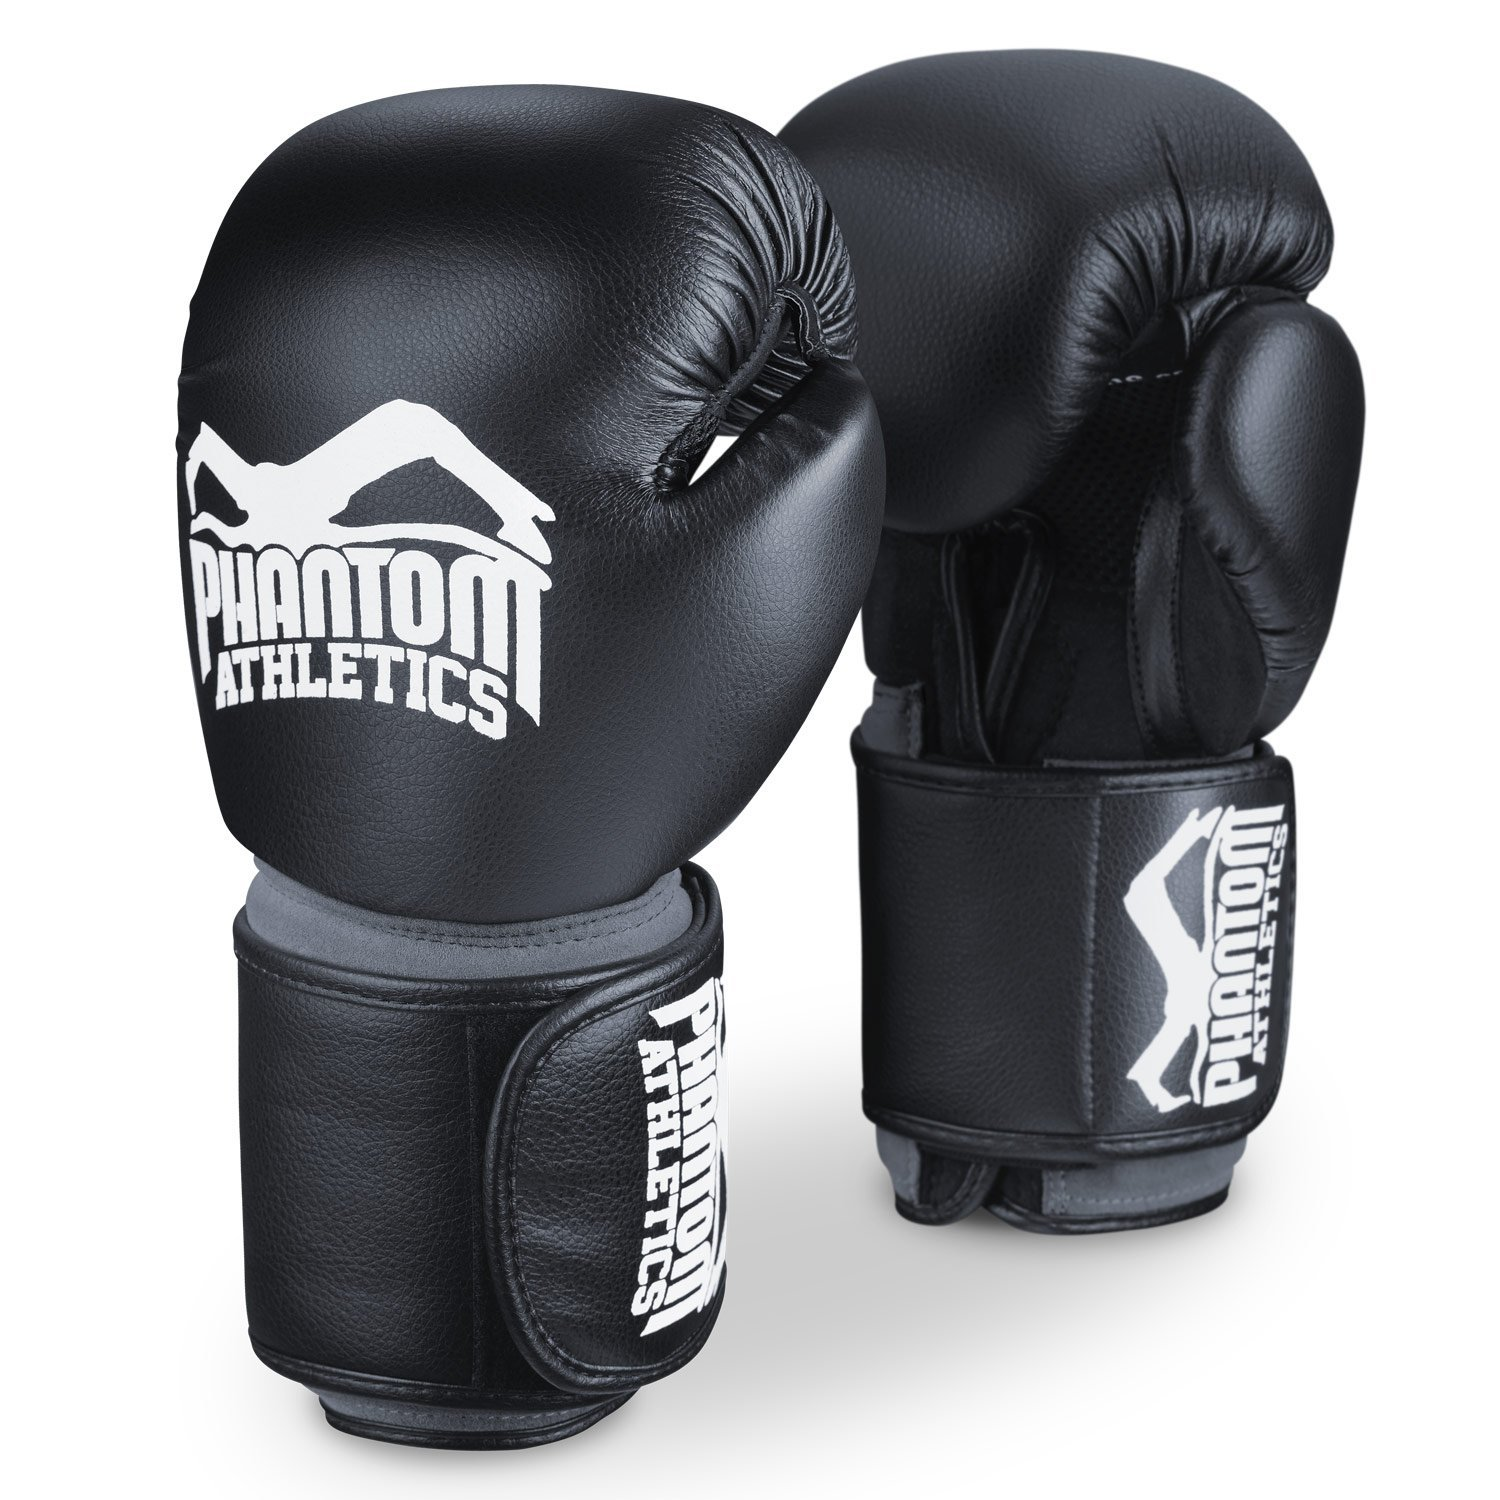 Gants de boxe Phantom Atlhetics Élite ATF